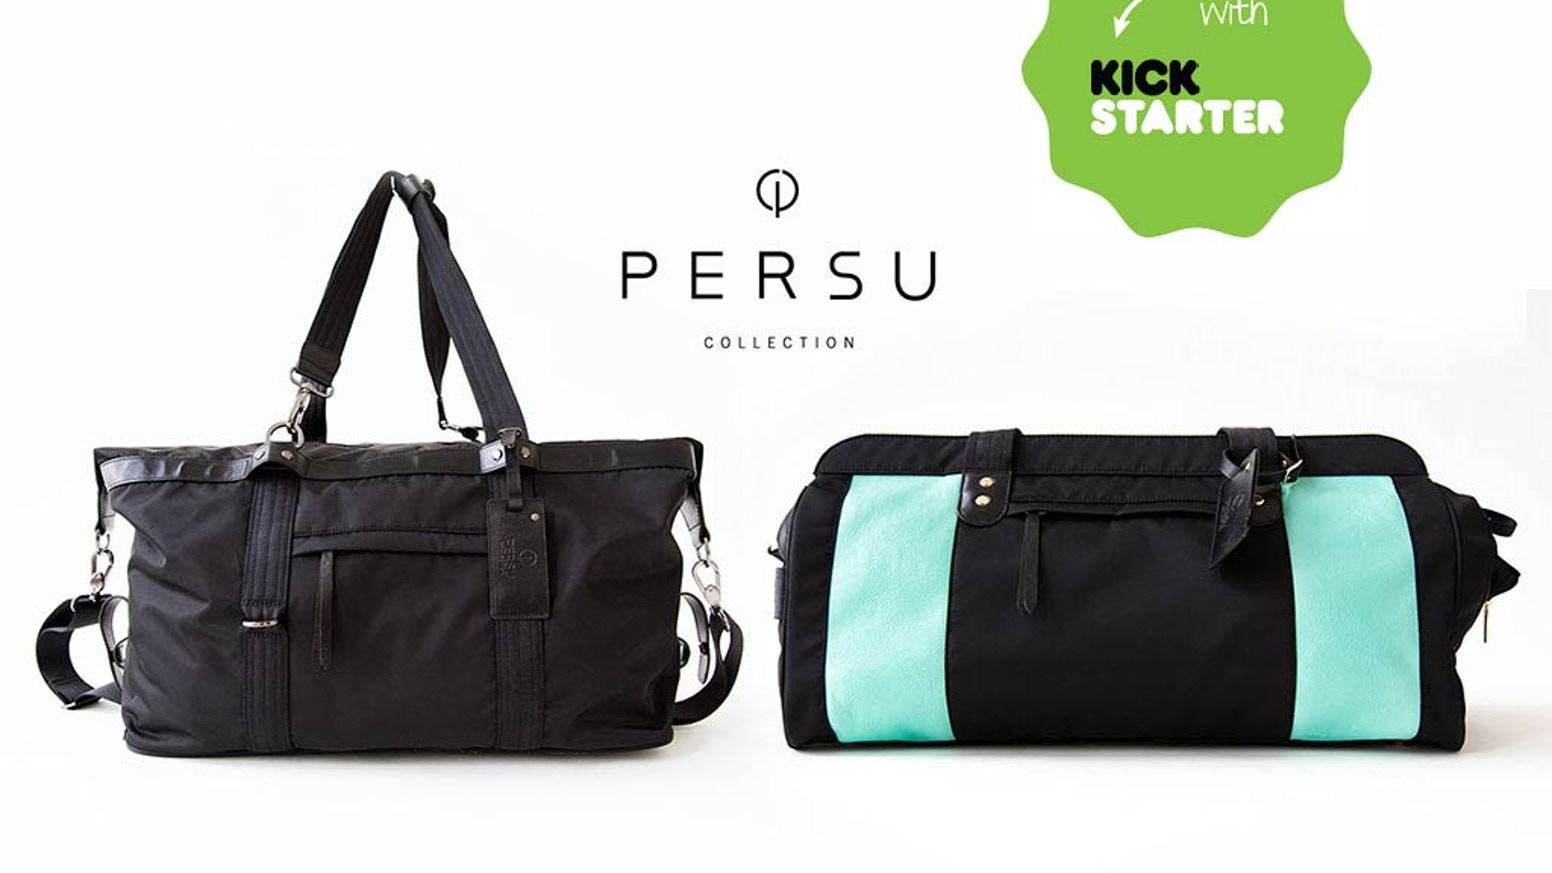 Functional Sleek And Durable Luxe Athletic Weekender Bags Designed To Simplify Your Life